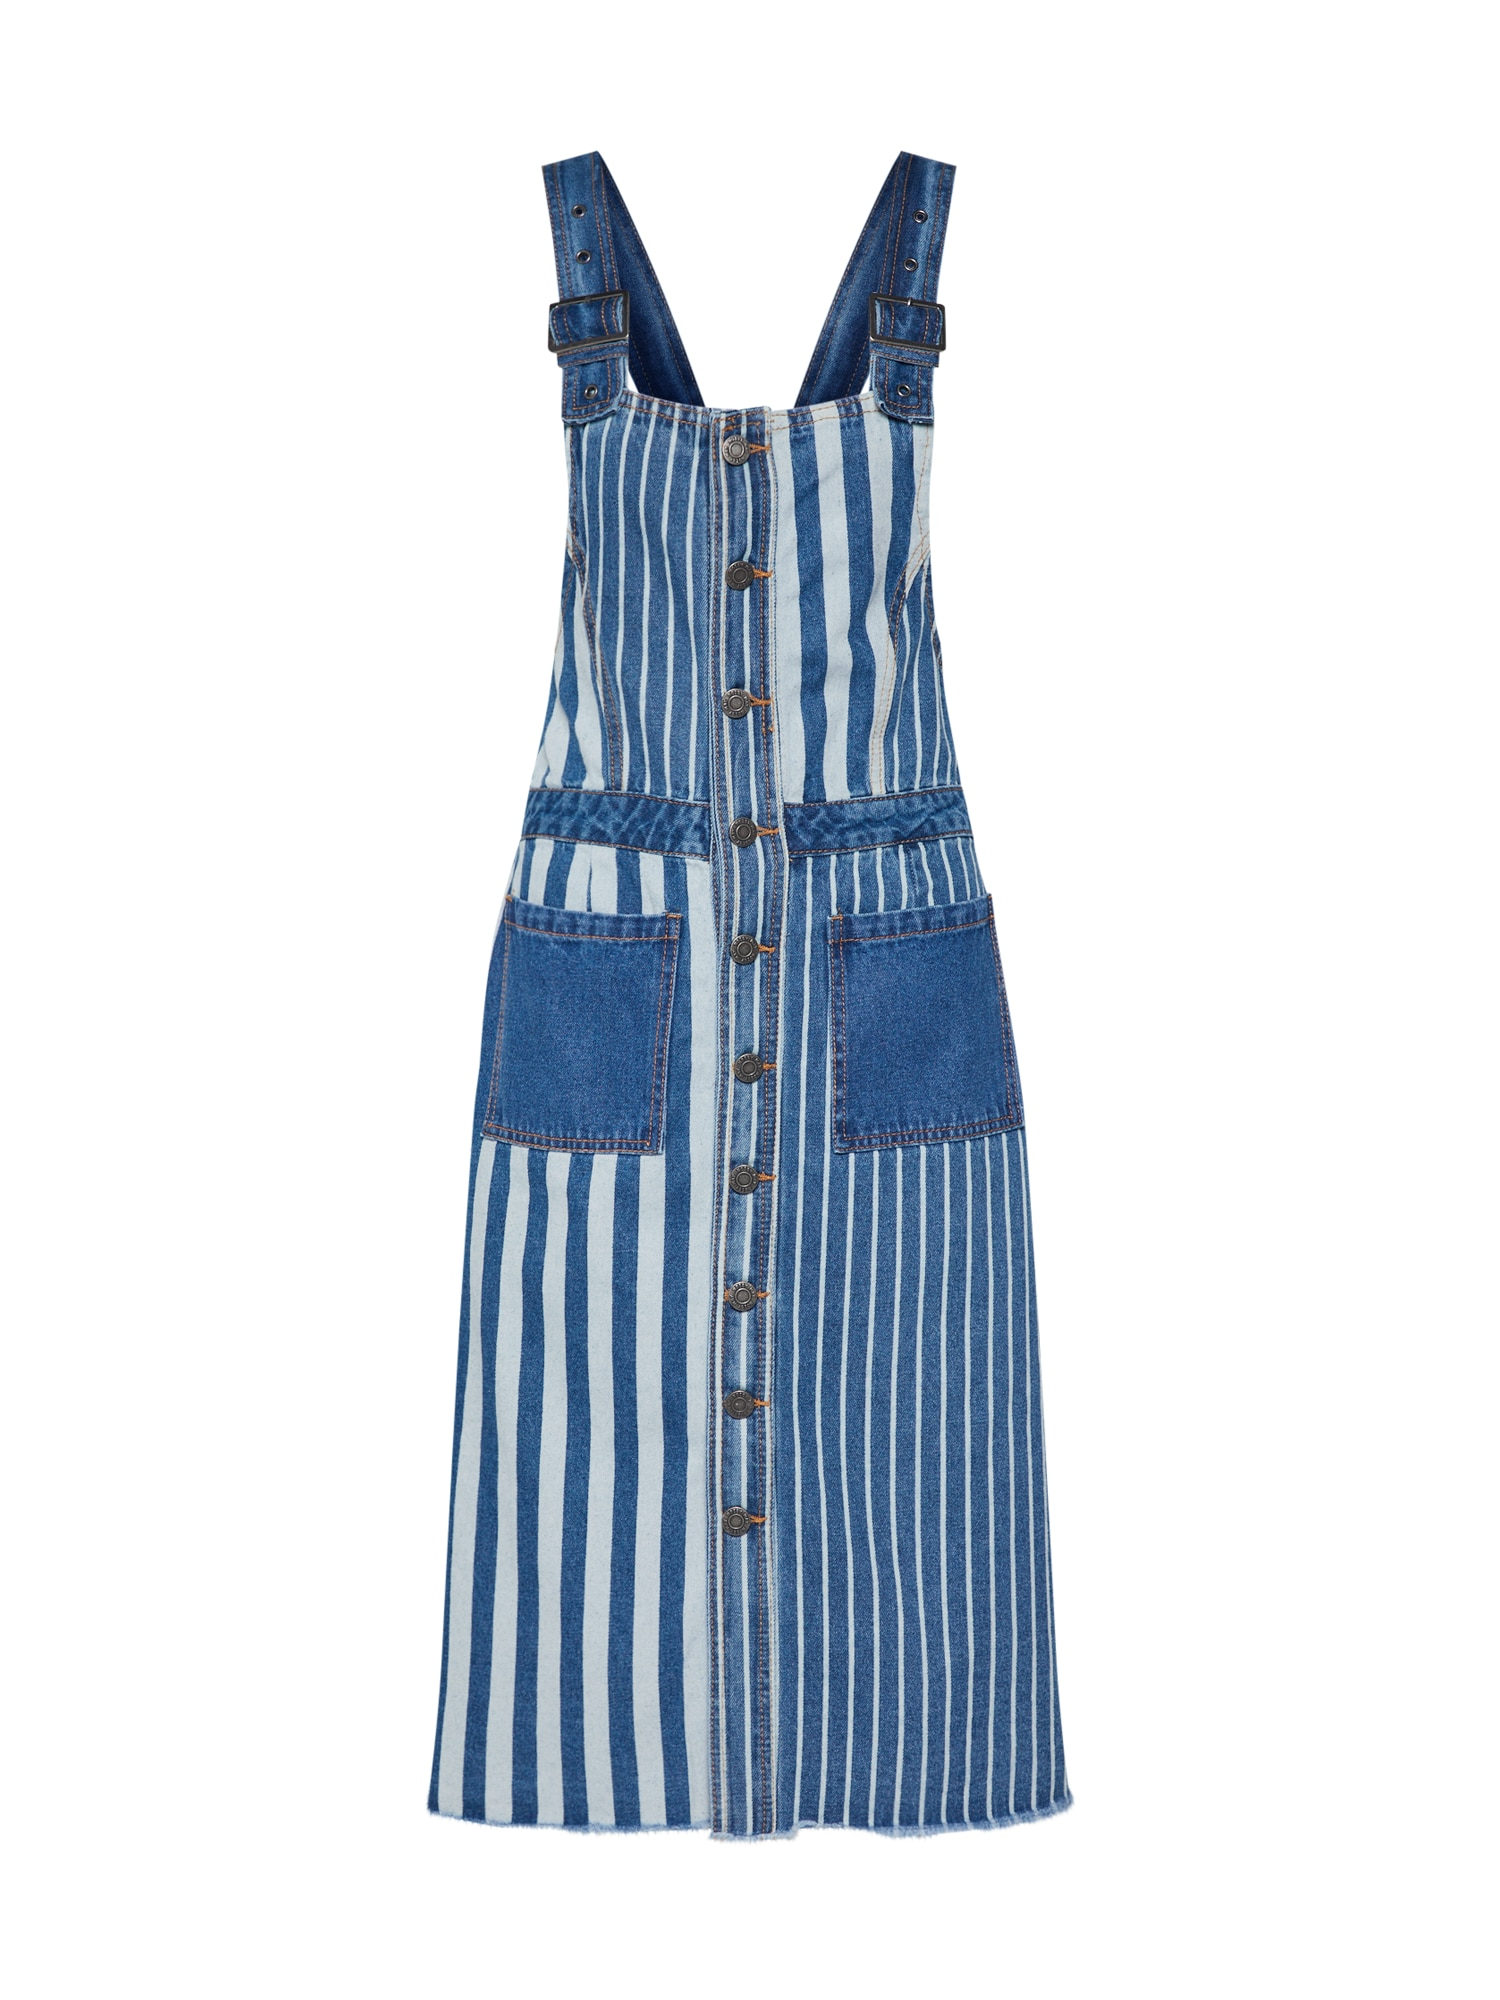 Laclová sukně NMJENNY DUNGAREE STRIBE DRESS modrá džínovina Noisy May